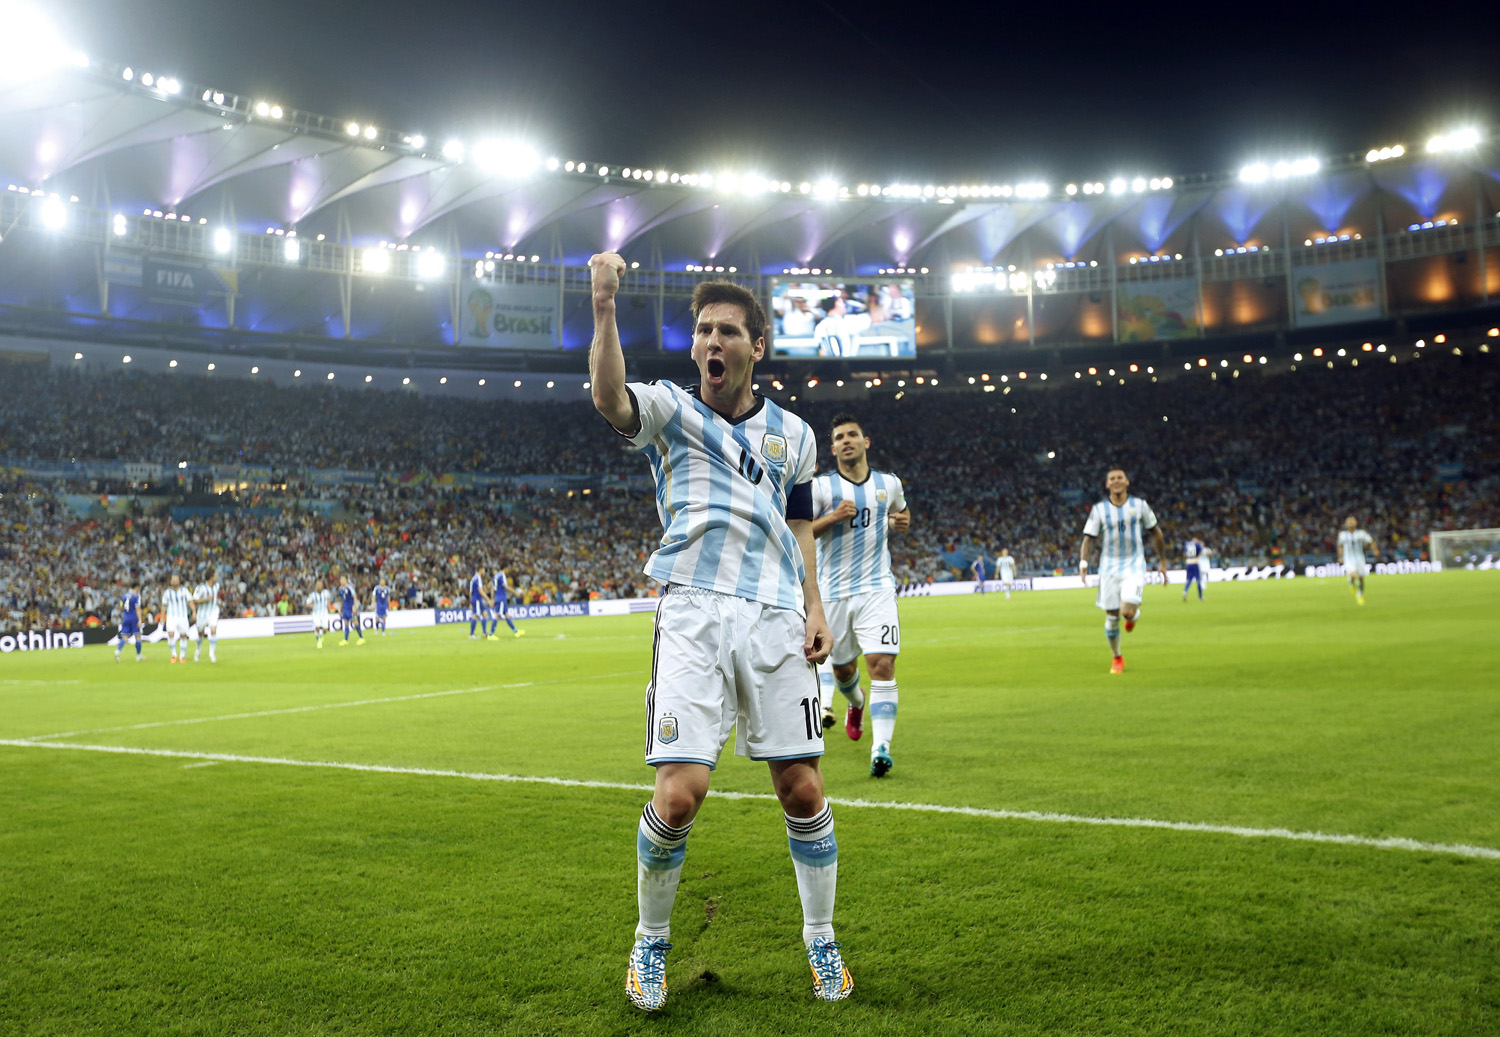 Argentina's Lionel Messi celebrates after scoring his side's second goal during the group F World Cup soccer match between Argentina and Bosnia at the Maracana Stadium in Rio de Janeiro on June 15, 2014.